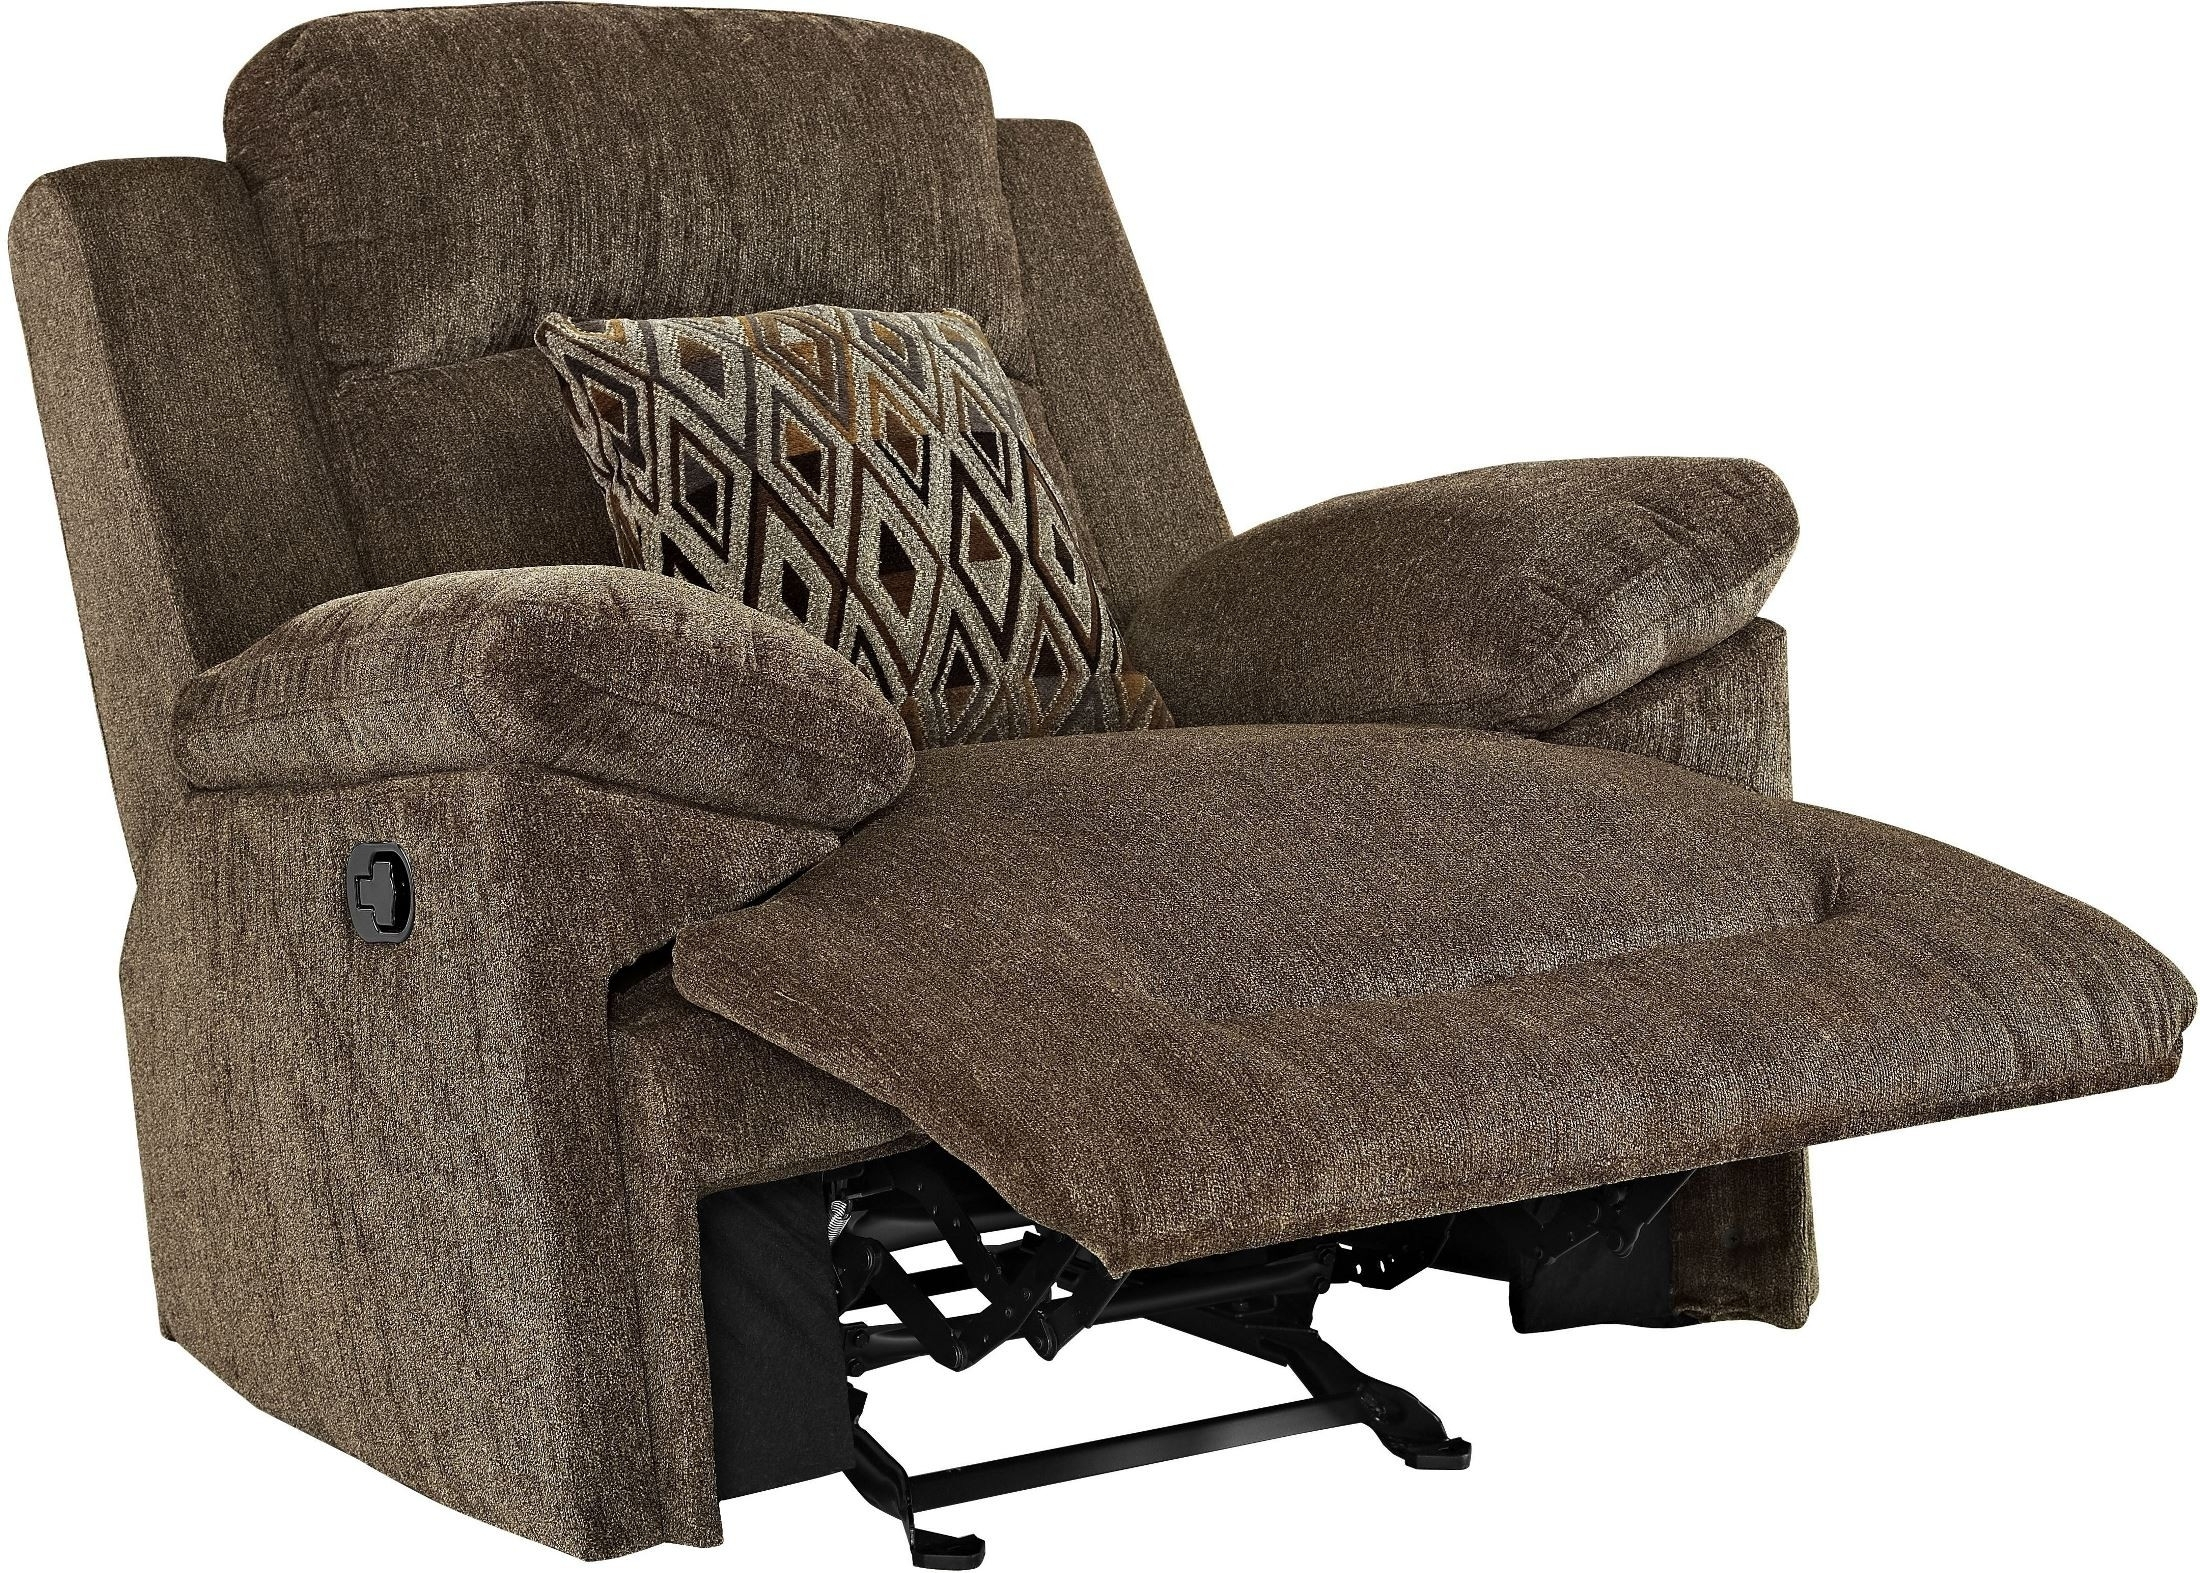 Ryder King Kong Cocoa Glider Recliner From New Classic | Coleman inside Burton Leather 3 Piece Sectionals With Ottoman (Image 18 of 30)